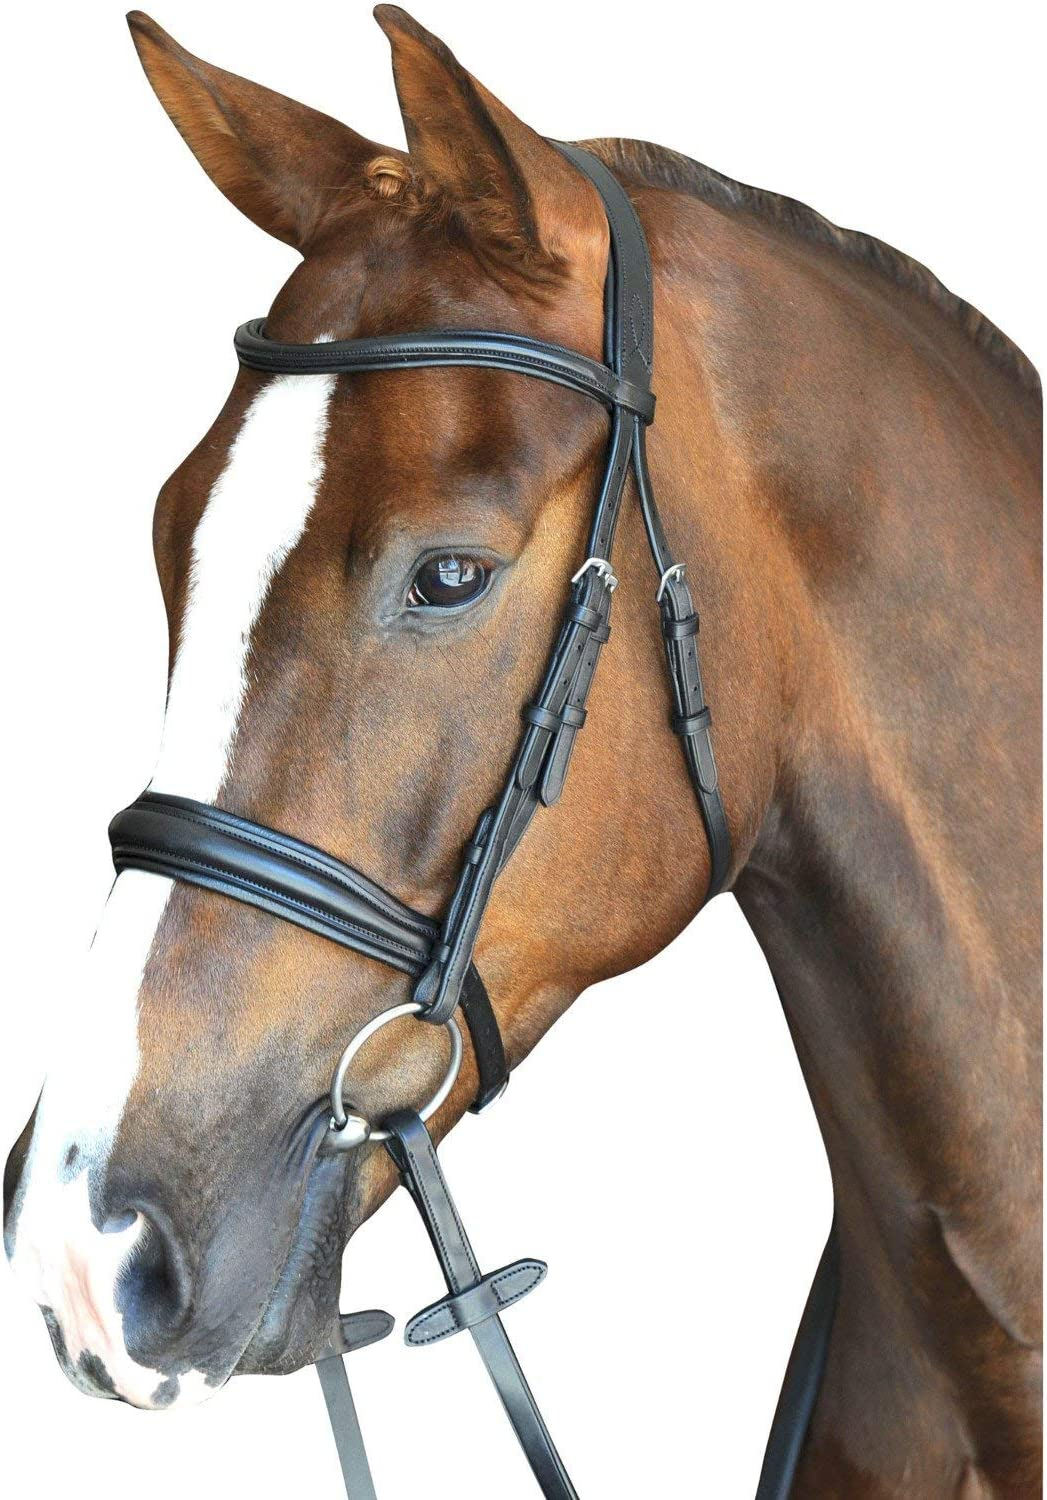 Collegiate Monoクラウンパッド入りRaised Cavesson Snaffle Bridle Warmbloodブラック